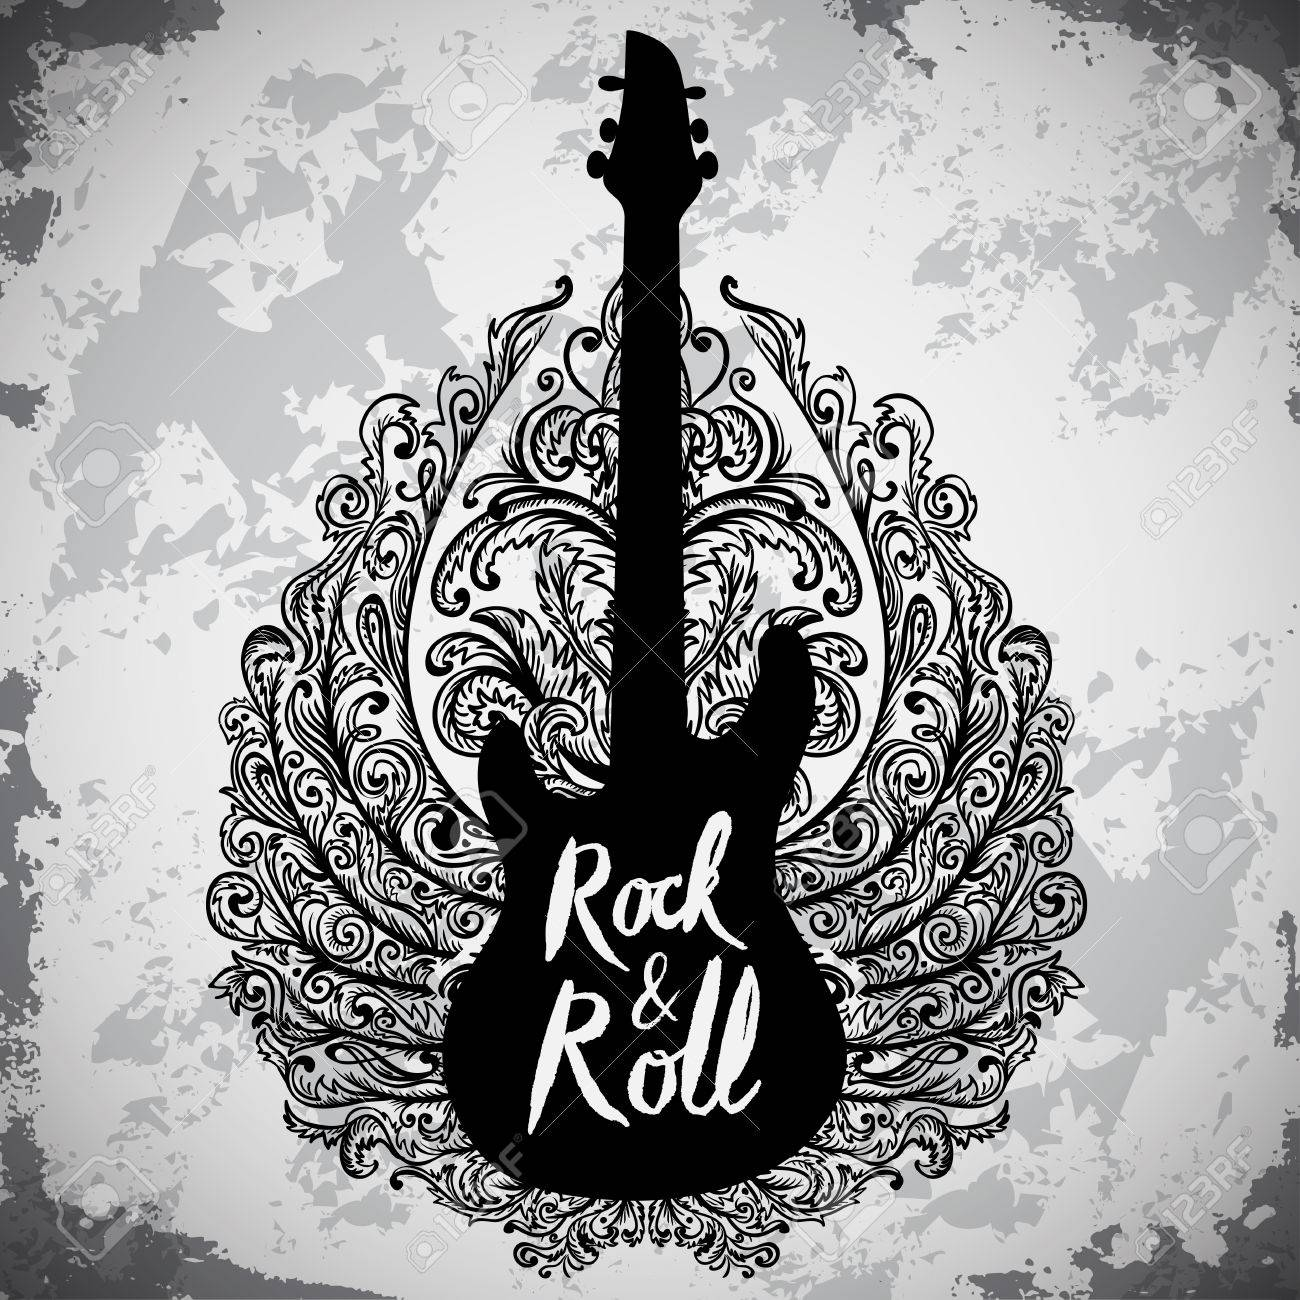 Vintage hand drawn poster with electric guitar, ornate wings and lettering rock and roll on grunge background. Retro vector illustration. Design, retro card, print, t-shirt, postcard - 49797524